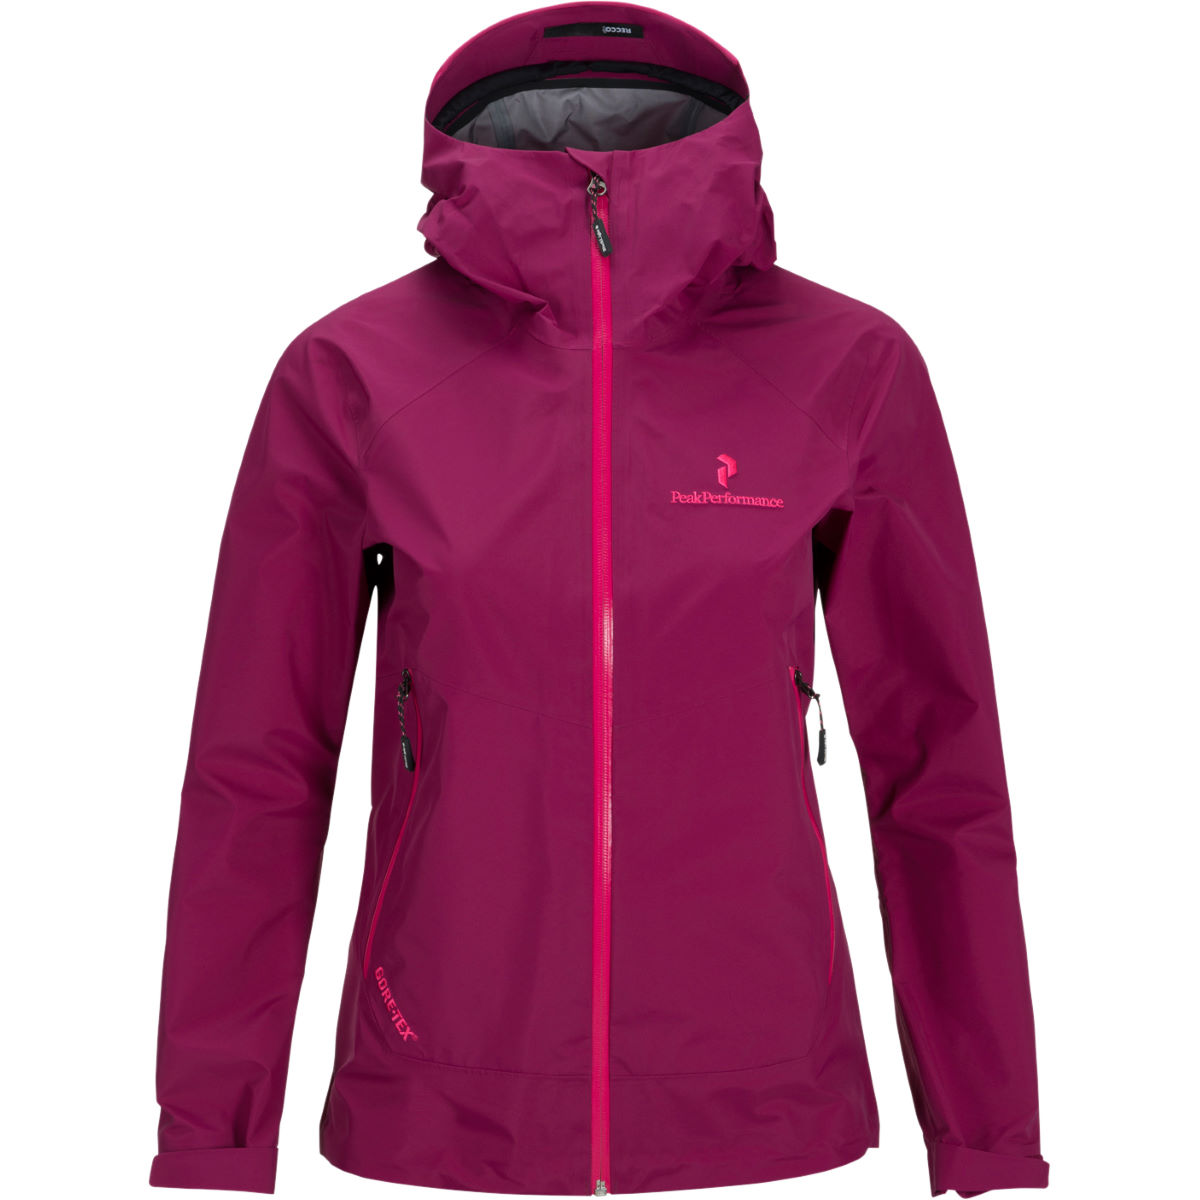 Peak Performance Women's Black Light 3 Layer Jacket (SS16) - Small